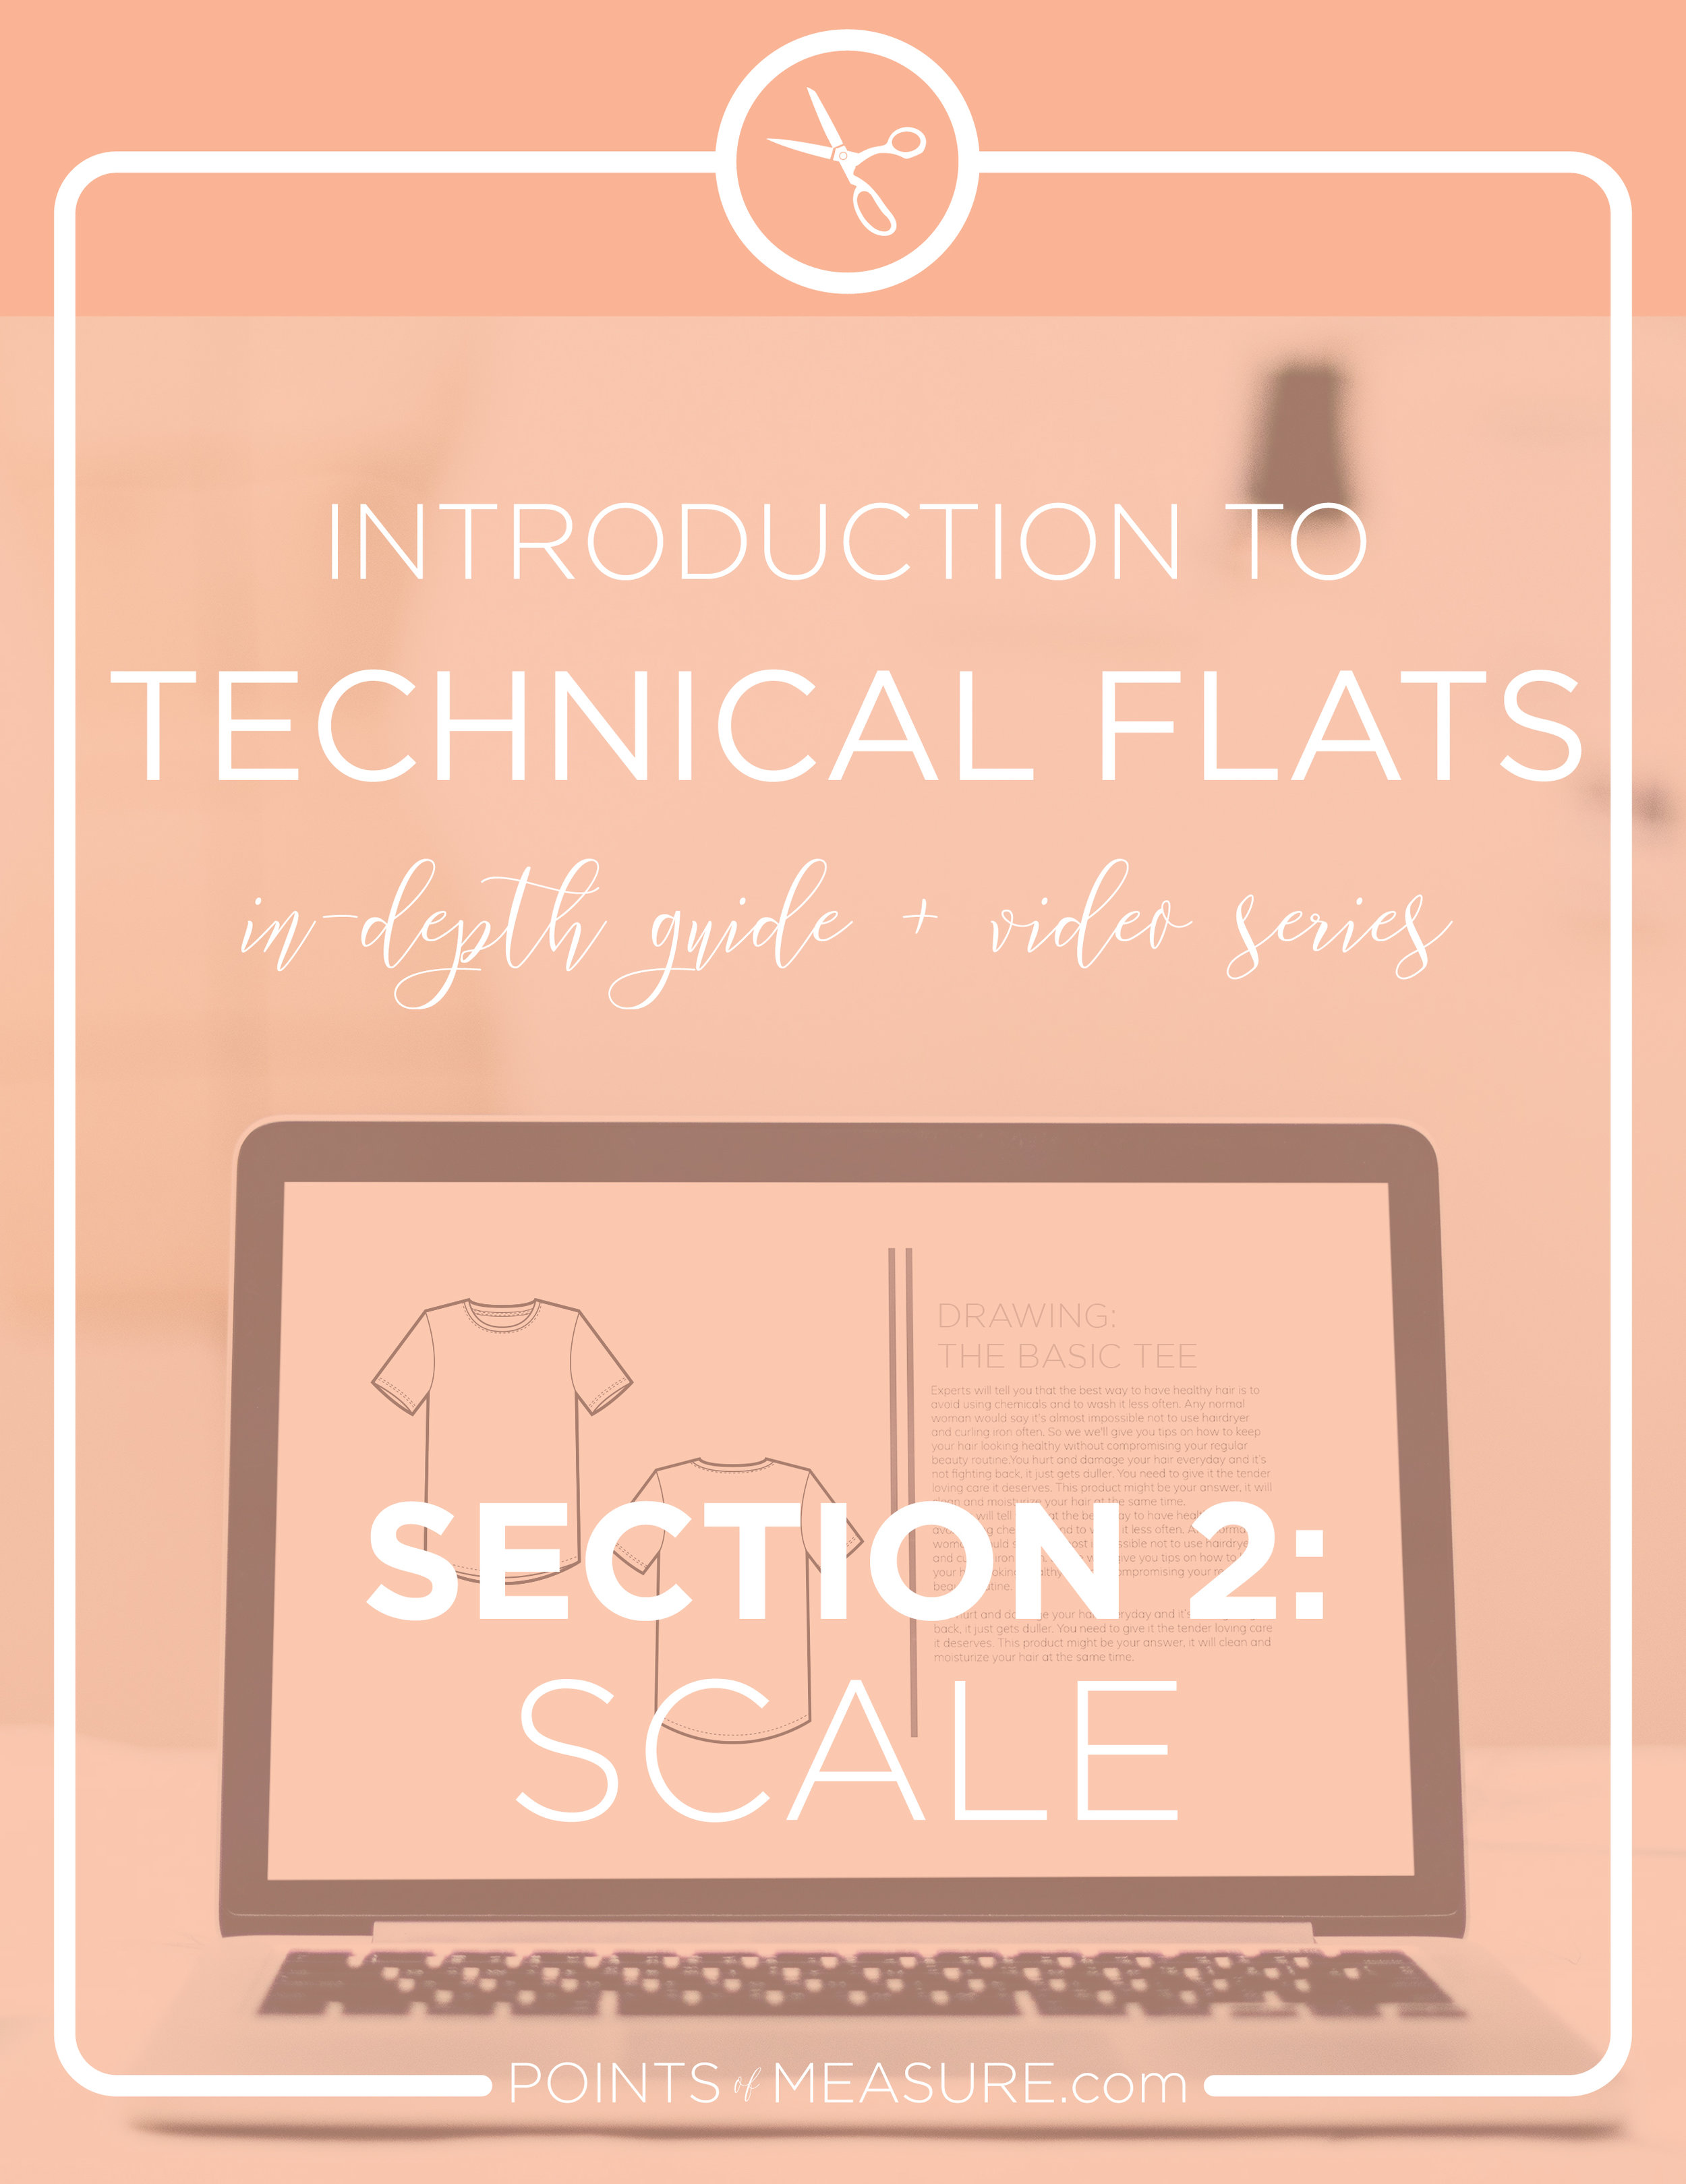 introduction-to-technical-flats-section-2-scale-points-of-measure.jpg